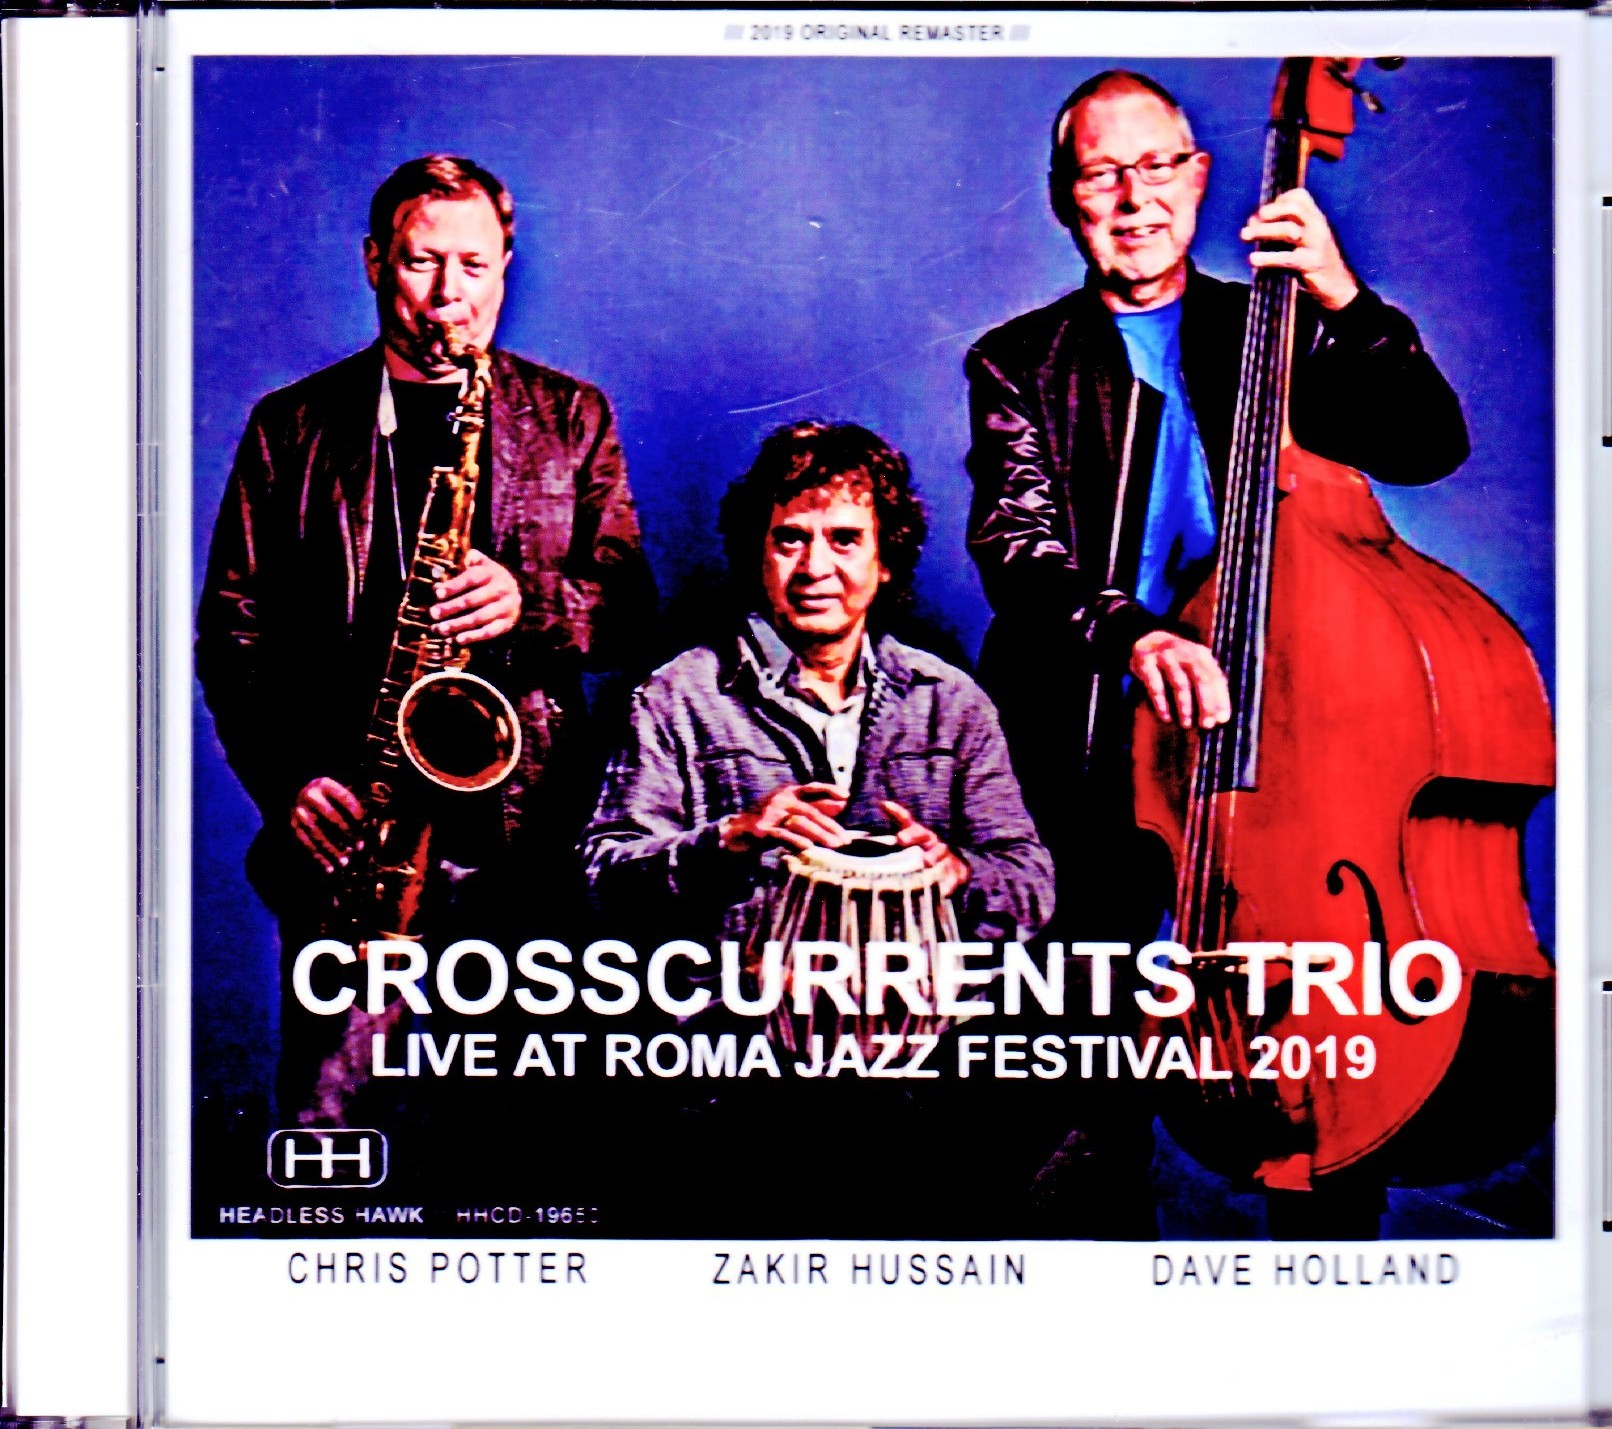 Crosscurrents Trio Chris Potter,Zakir Hussain,Dave Holland クリス・ポッター/Italy 2019